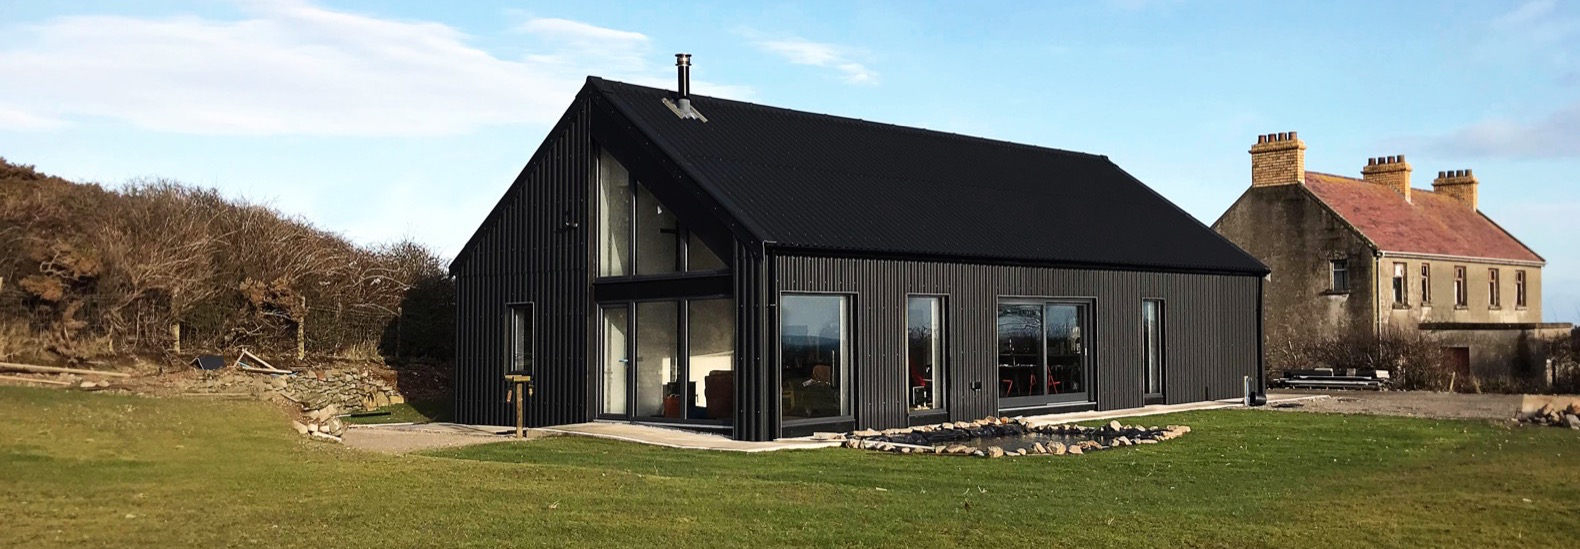 Container Haus Irland Metal Clad Eco Cottage Puts A Modern Spin On Irish Rural Architecture